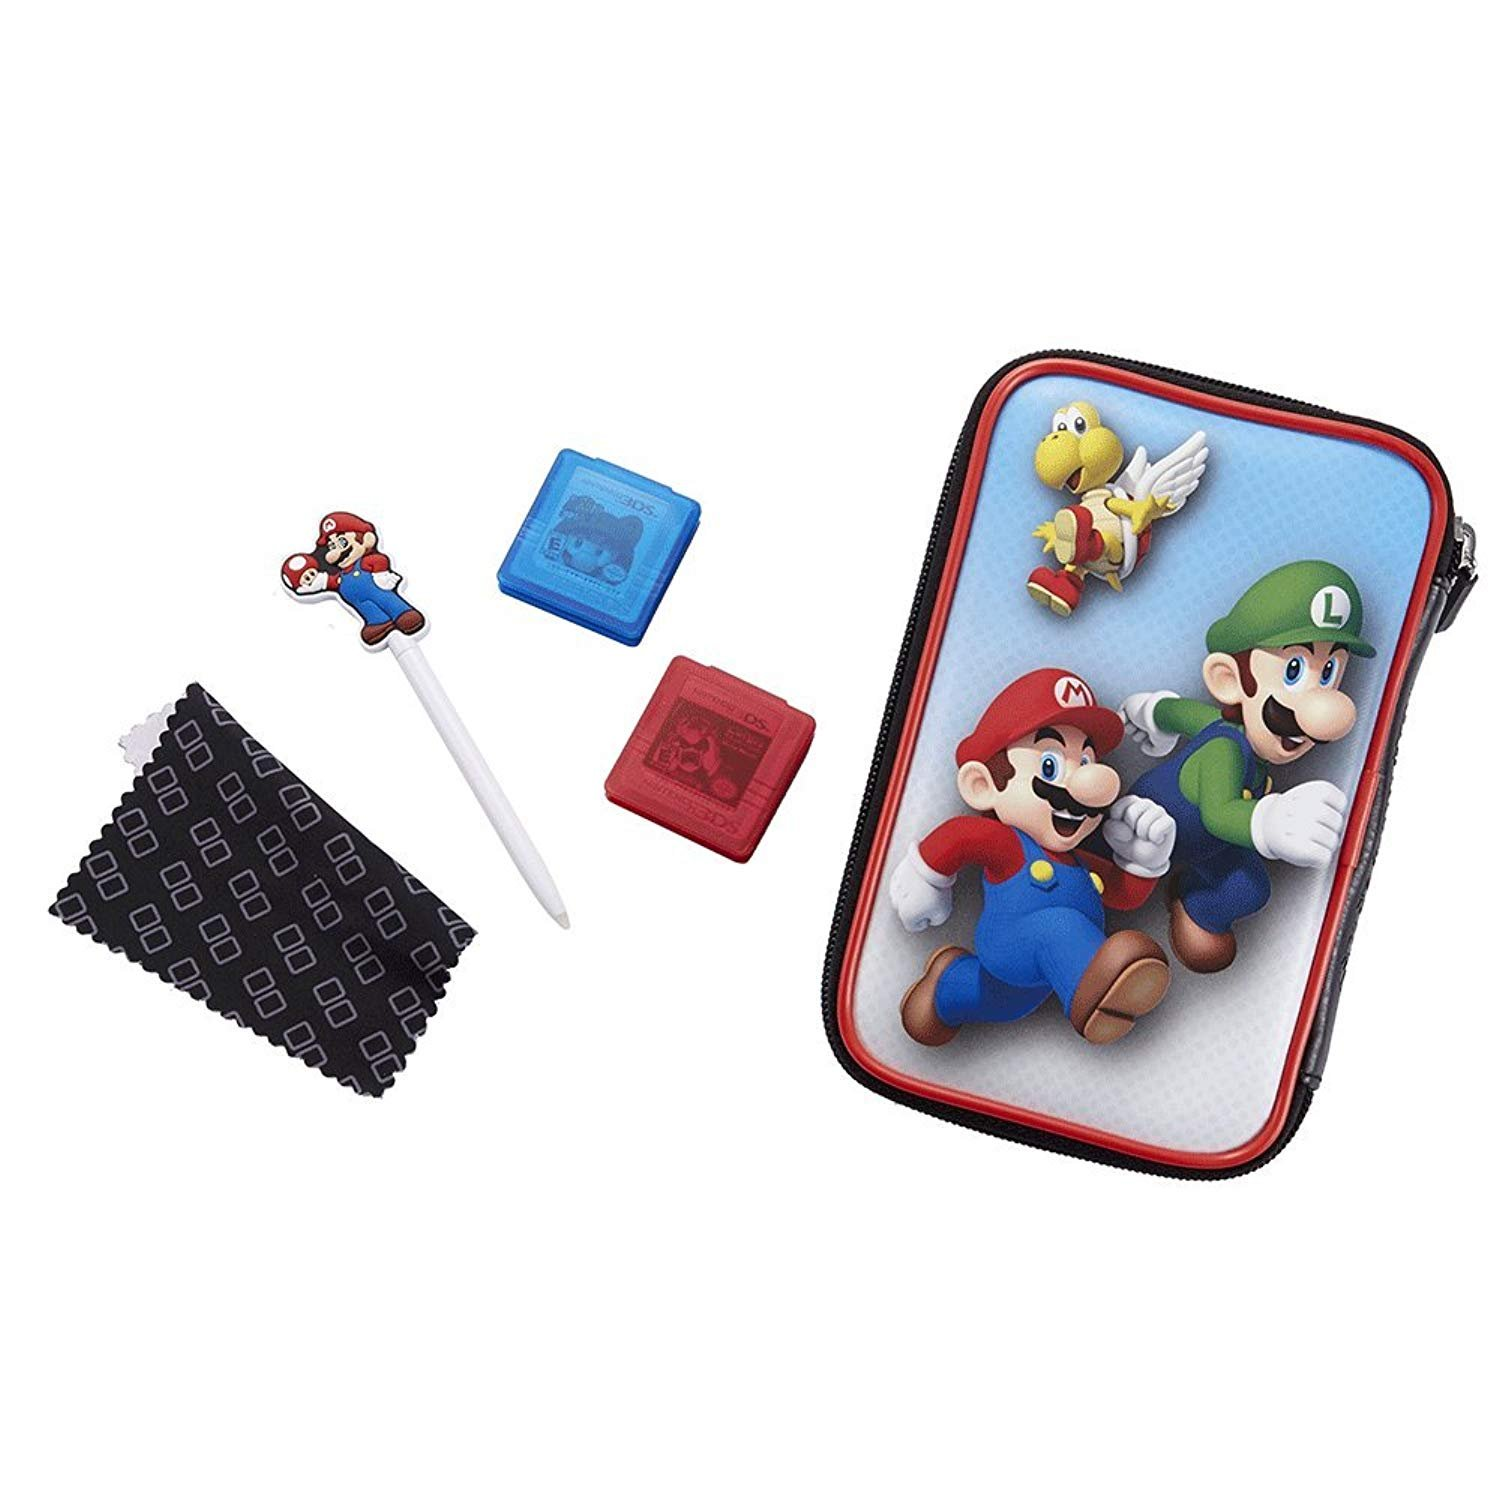 """Official Nintendo New 3DS XL / 3DS XL - Accessory Set """"Official Essential Mario Pack"""" 4 Motifs For selection Protects 3DS und Games - Luigi, Set"""